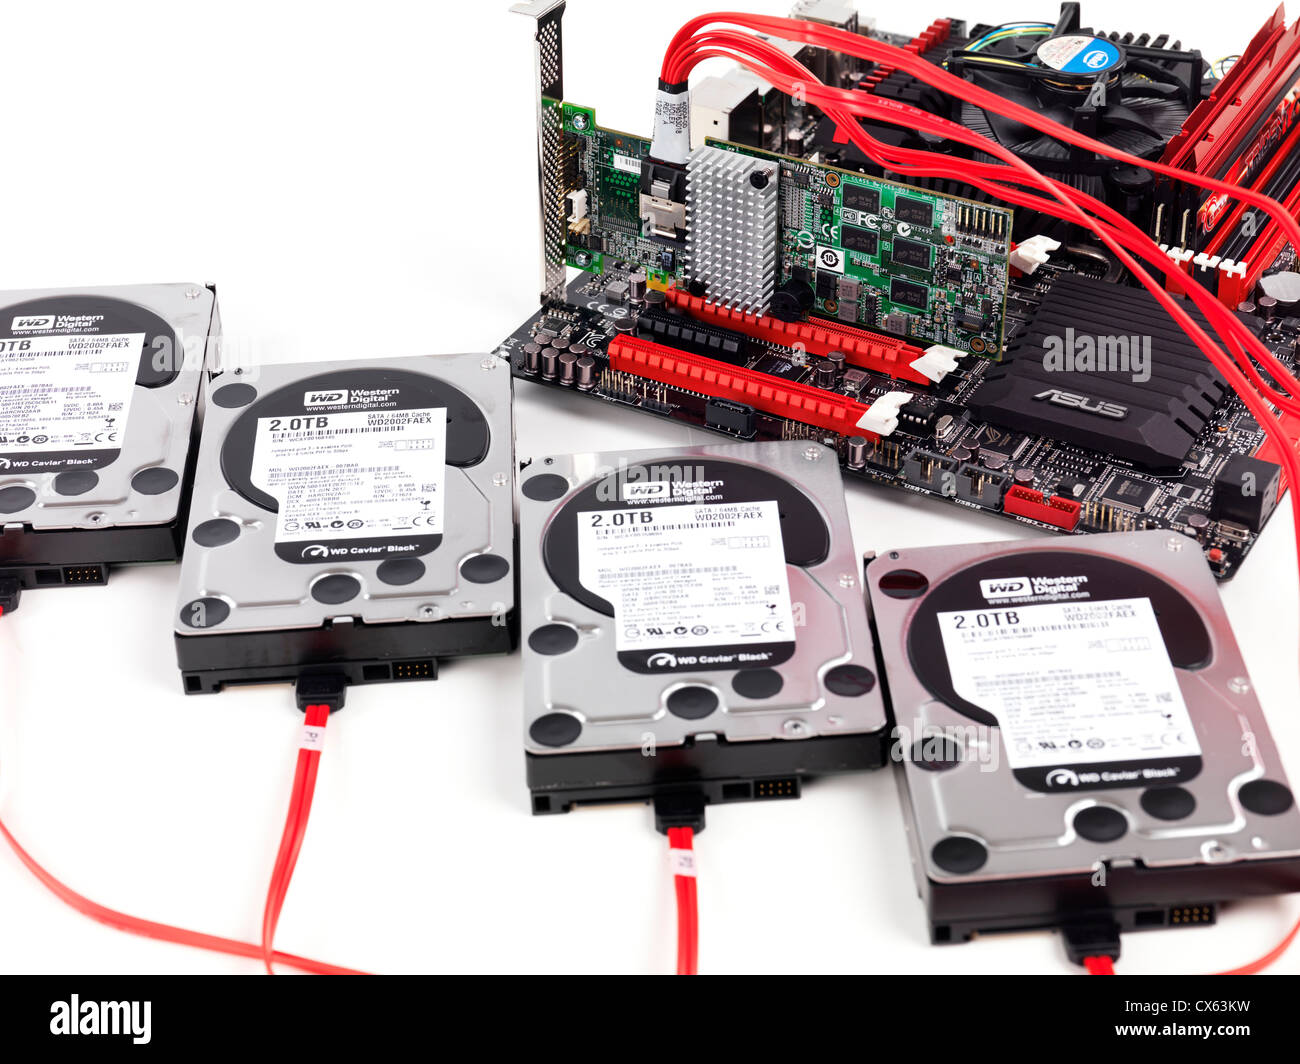 Closeup of four hard drives connected to computer motherboard with a RAID controller - Stock Image